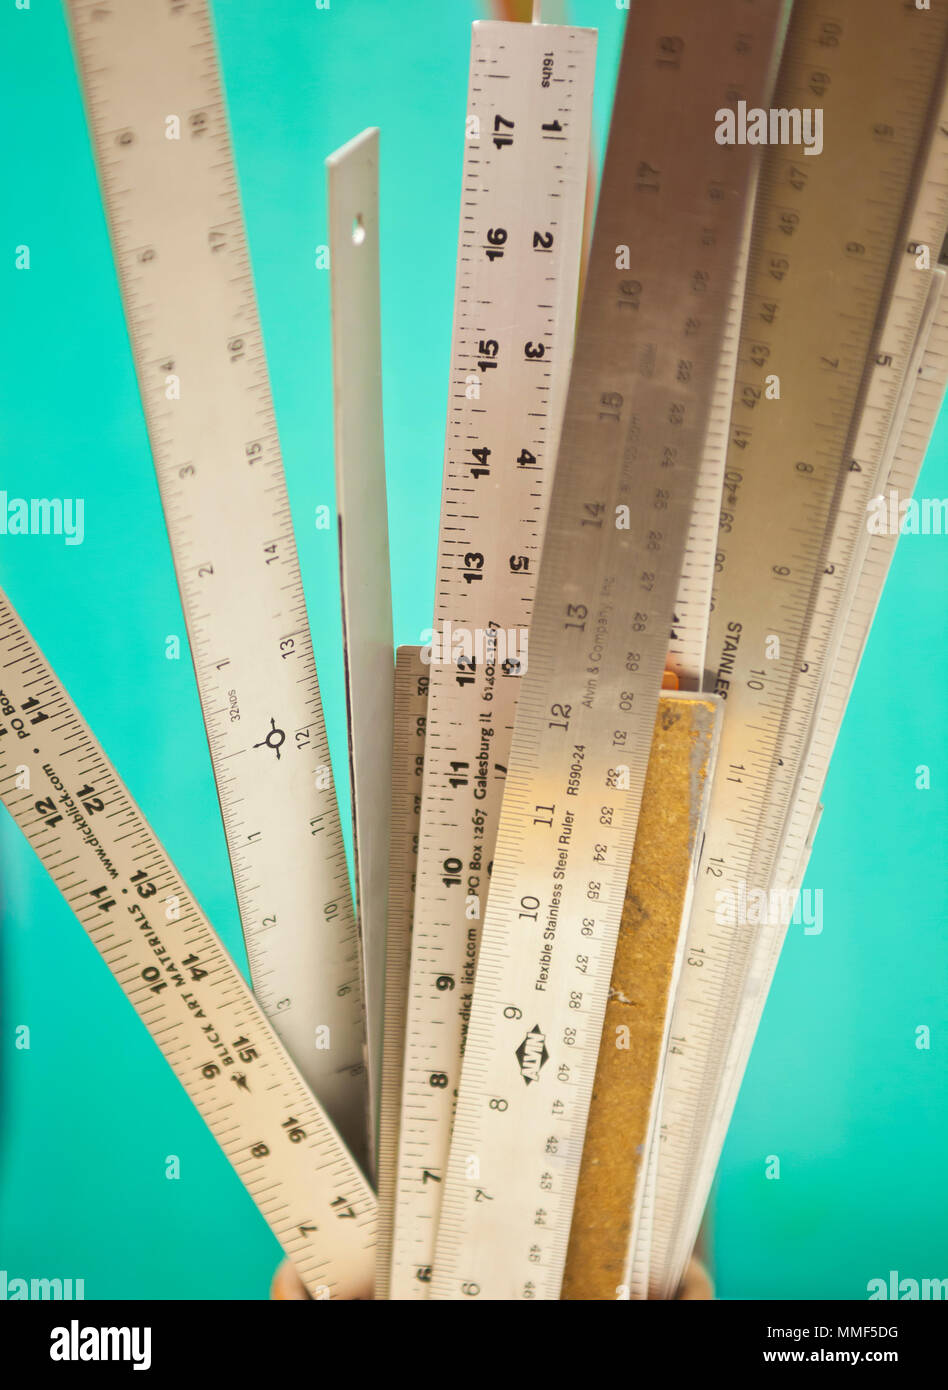 Still life of a collection of rulers on a plain blue background - Stock Image